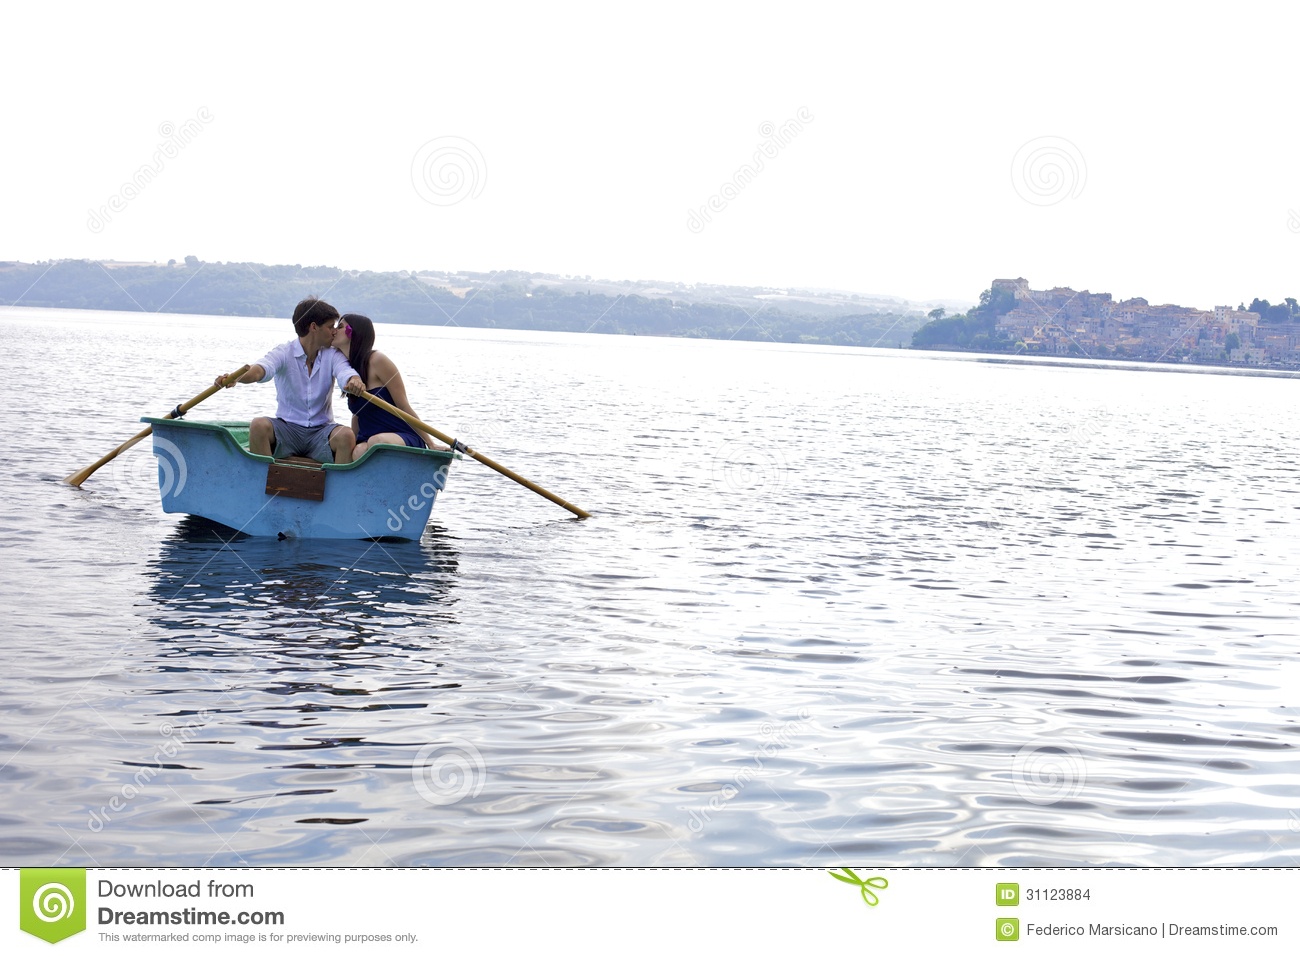 Couple Kissing On Boat In Italian Lake During Vacation Stock Images - Image: 31123884